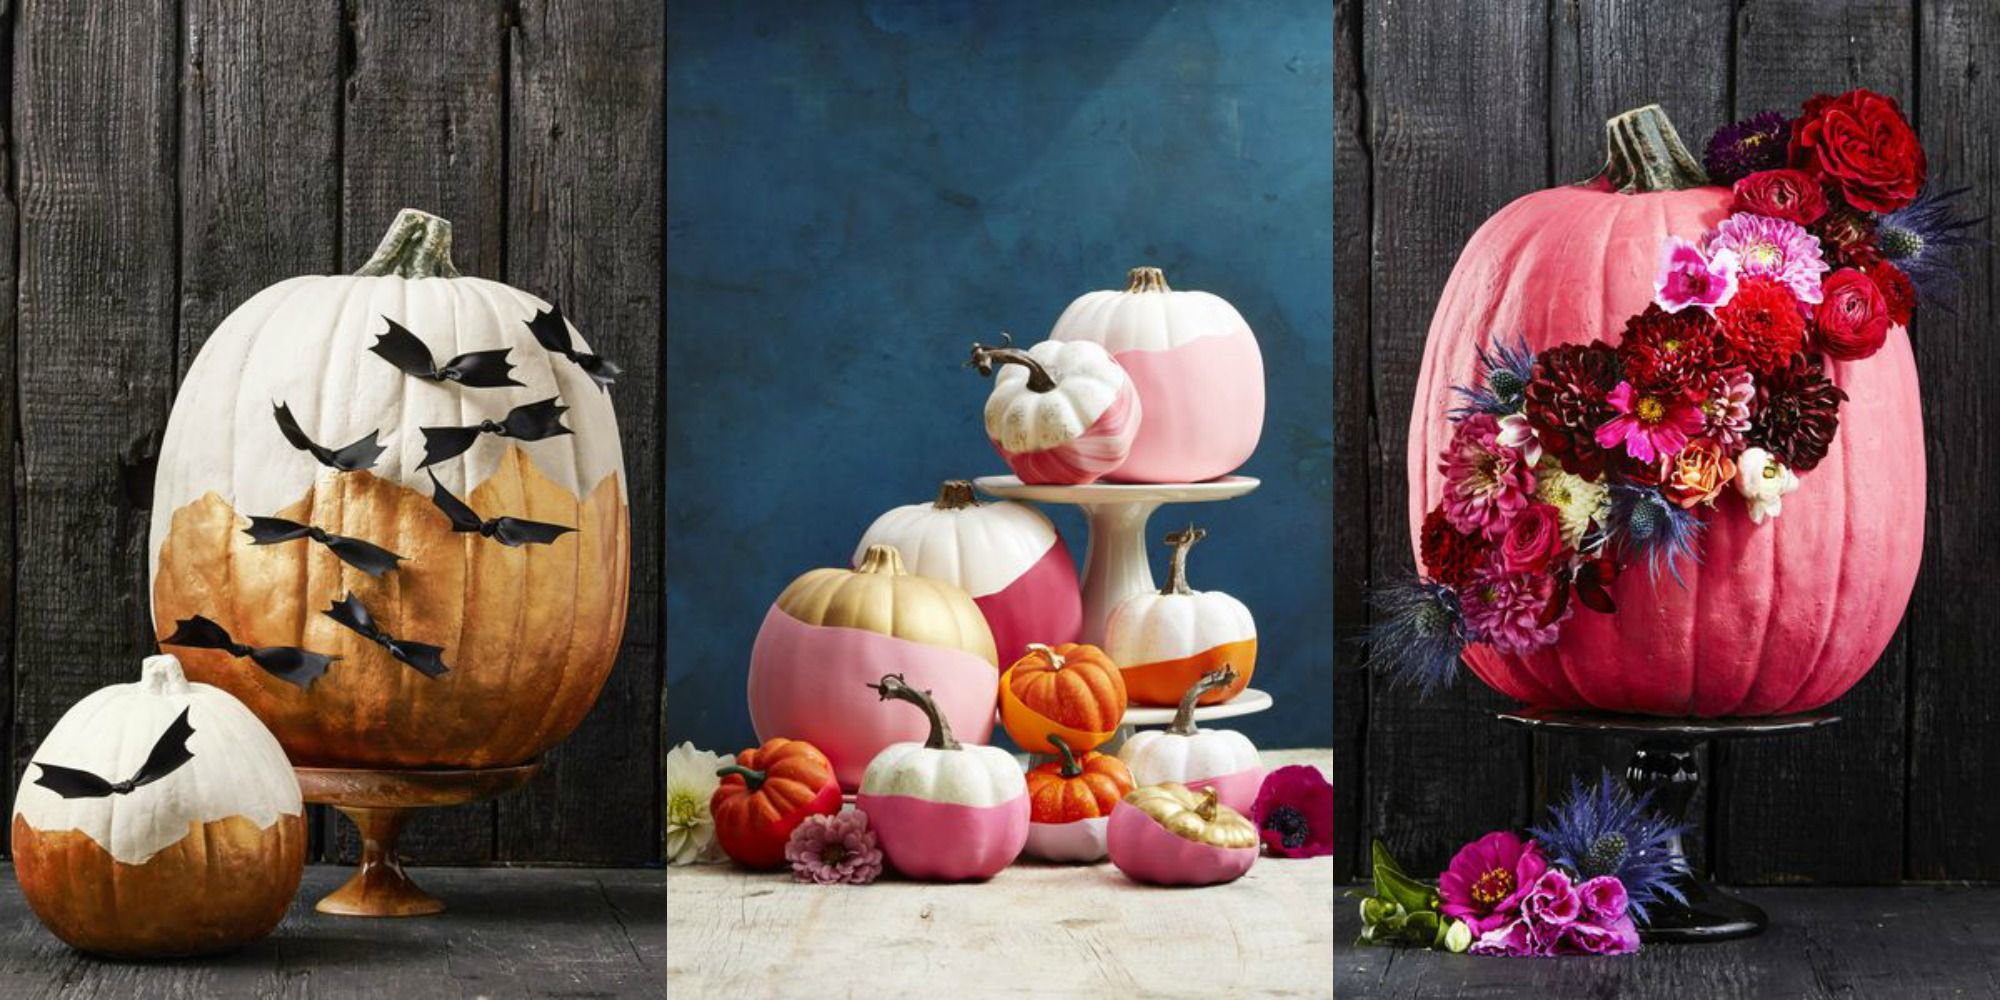 60  Pumpkin Designs We Love for 2018   Pumpkin Decorating Ideas image  Mike Garten  No carving skills